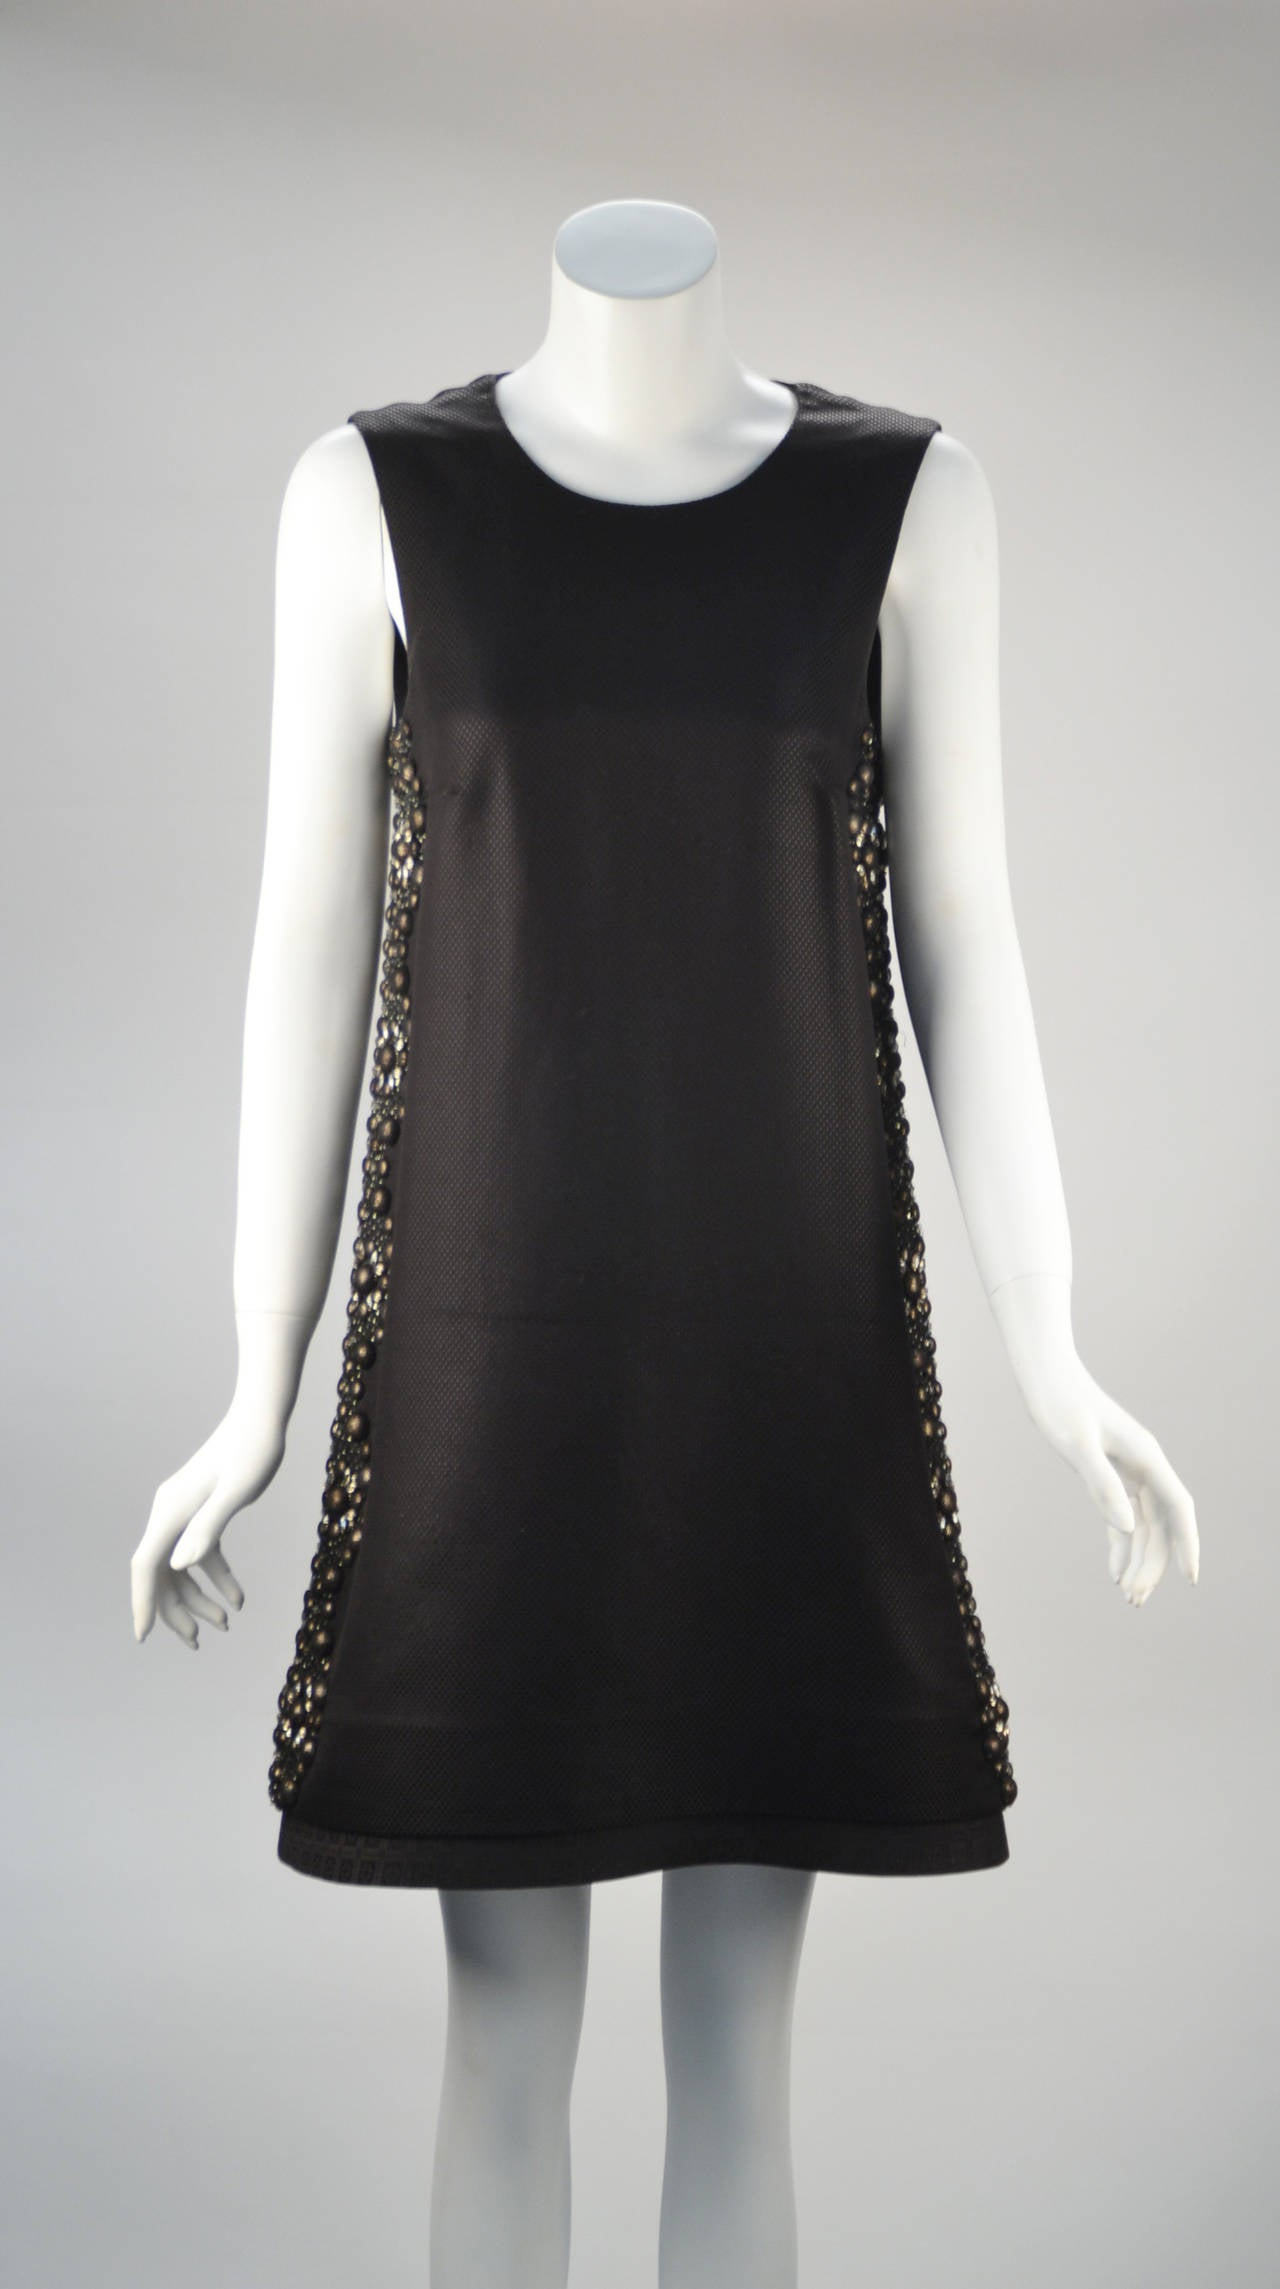 21st Century Black Studded Gucci Dress  For Sale 3